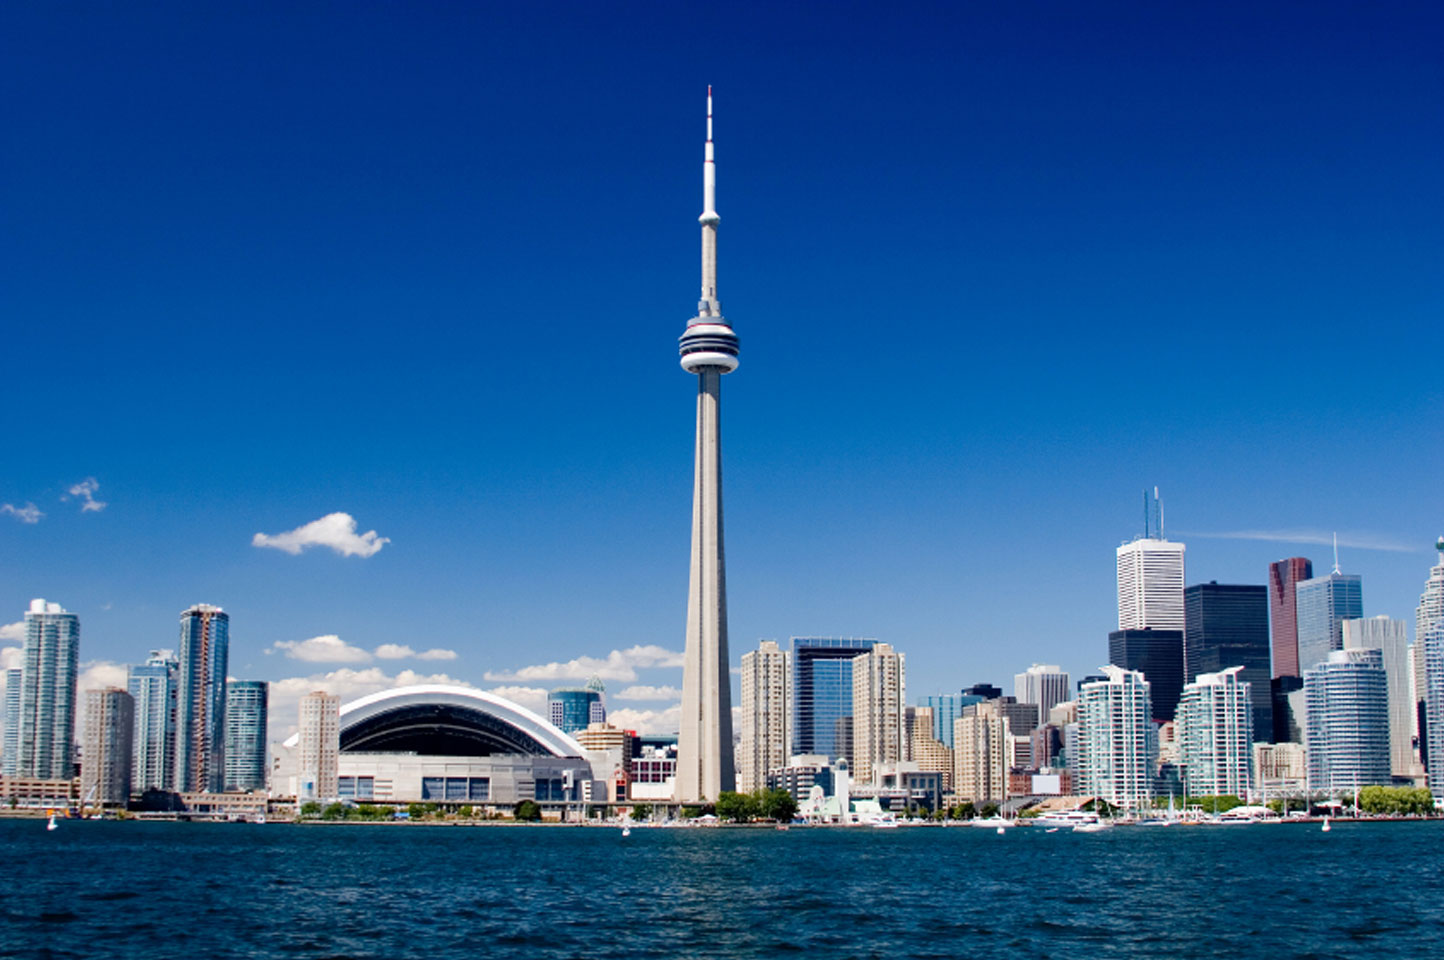 toronto - Noramco Wire and Cable